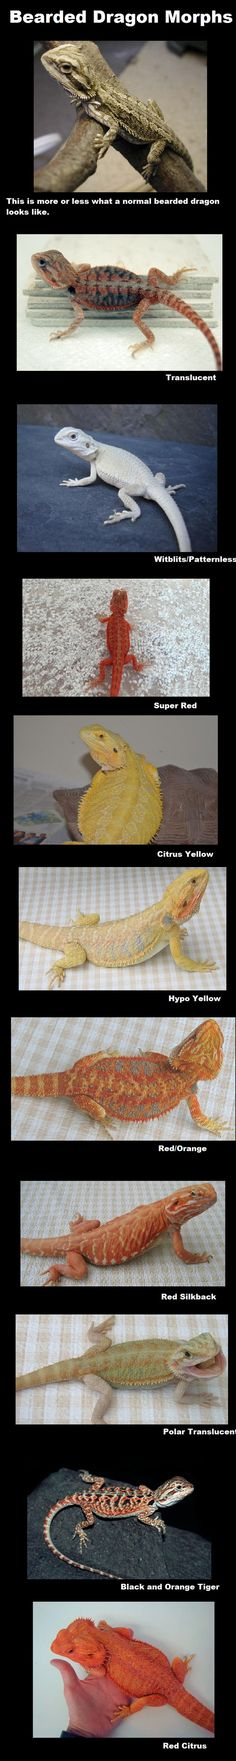 The Bearded Dragon Diet - 7 Top Foods - Exotic Bearded Dragons Bearded Dragon Funny, Bearded Dragon Cage, Bearded Dragon Habitat, Reptile Room, Reptile Cage, Reptile Enclosure, Cute Reptiles, Reptiles And Amphibians, Animals And Pets